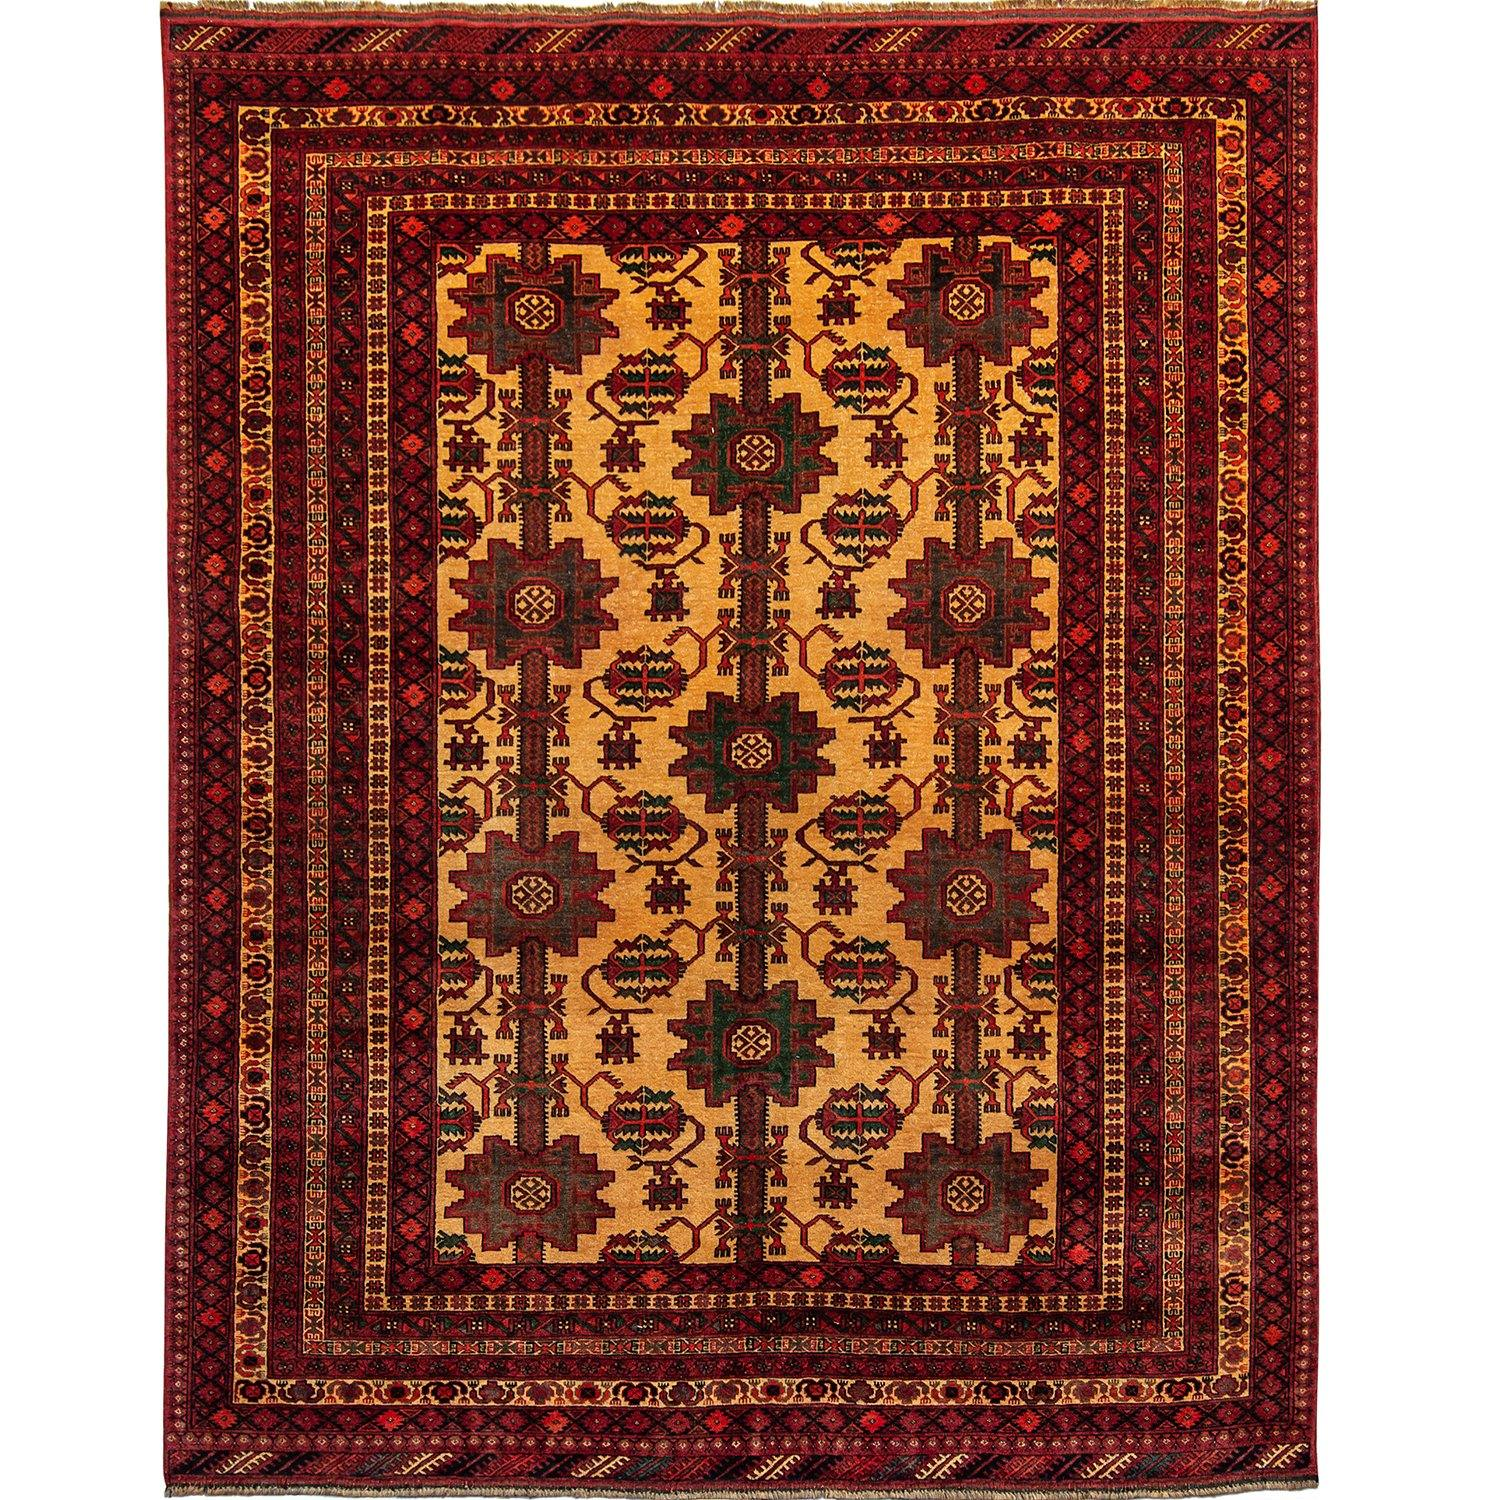 Kunduz Persian-Rug | House-of-Haghi | NewMarket | Auckland | NZ | Handmade Persian Rugs | Hand Knotted Persian Rugs